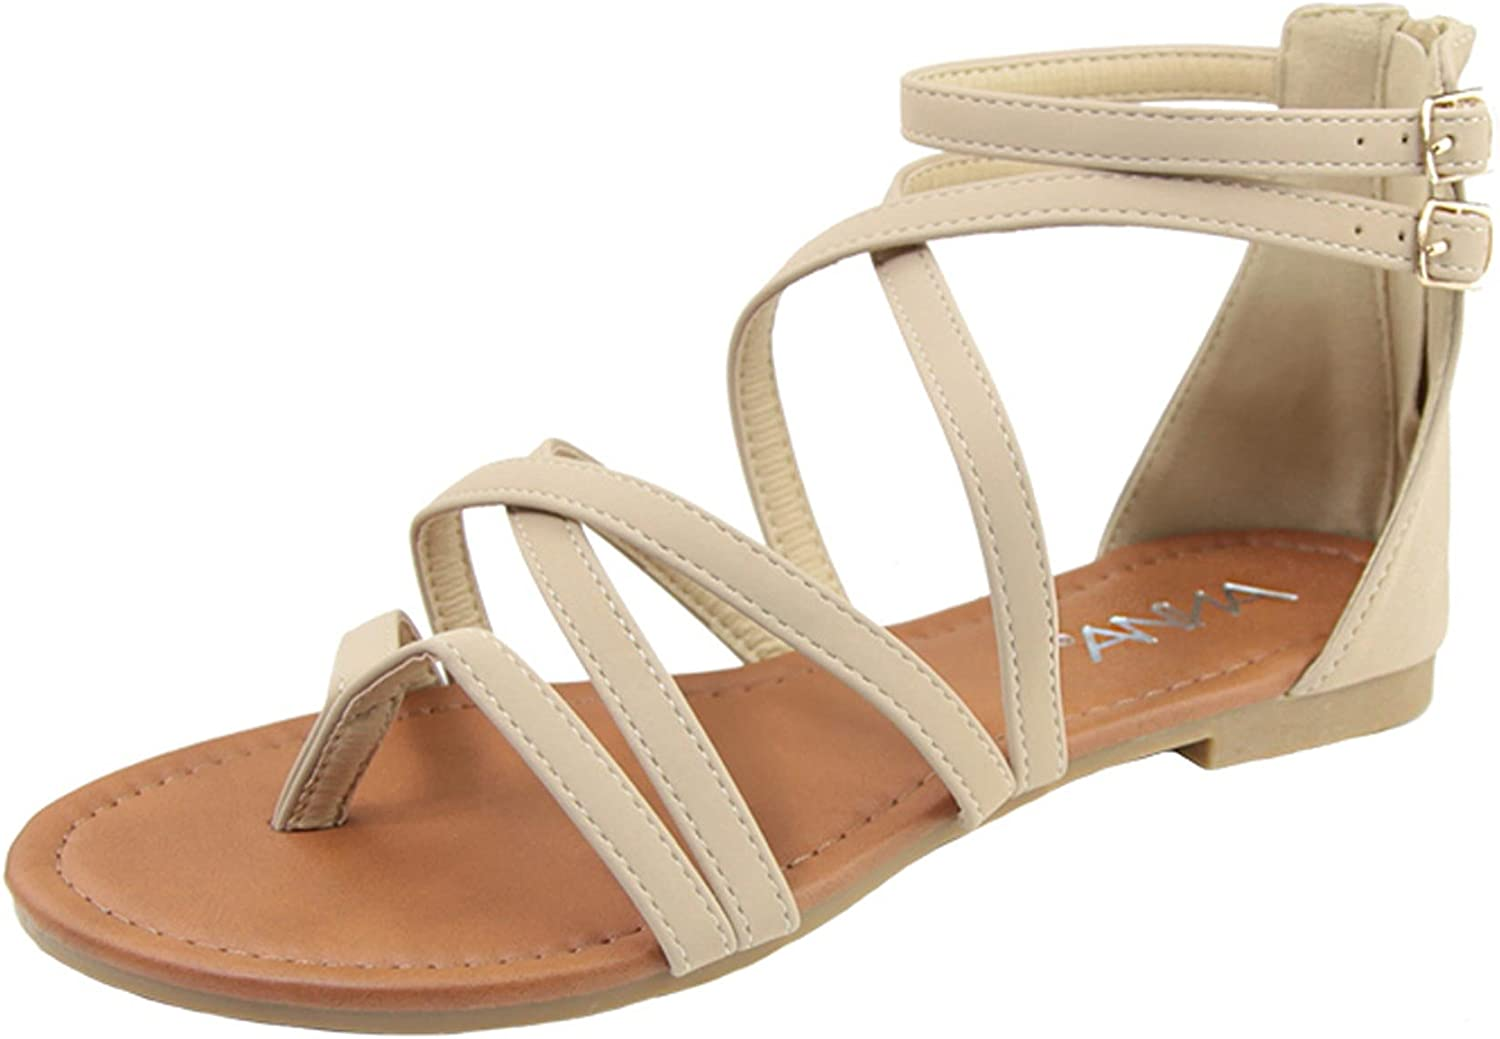 Anna shoes Women's Strappy Buckle Accent Zip Heel Flat Sandal